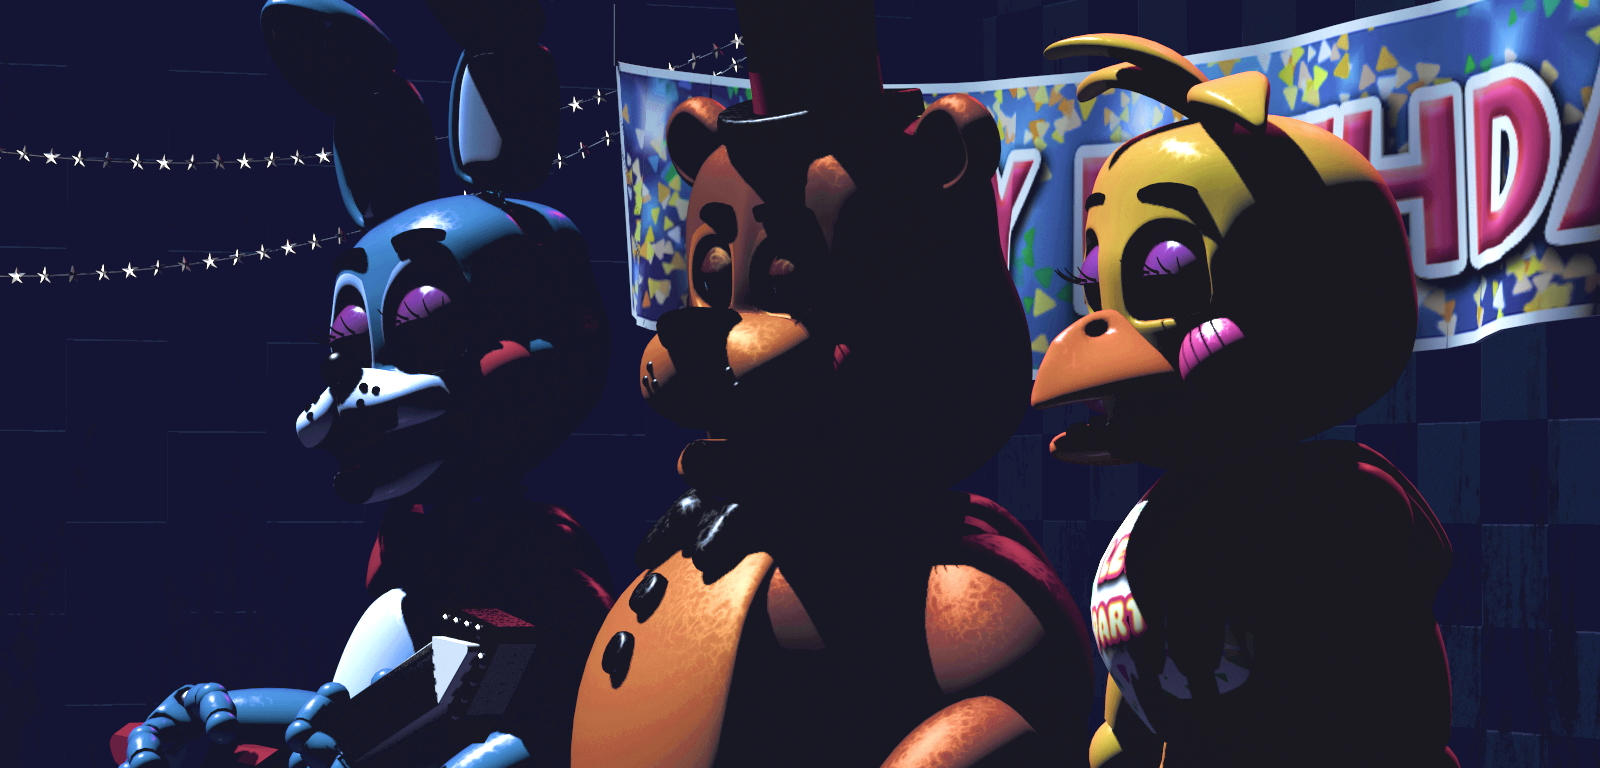 FNaF2 - Show Stage (Sin luces - Iluminado).png